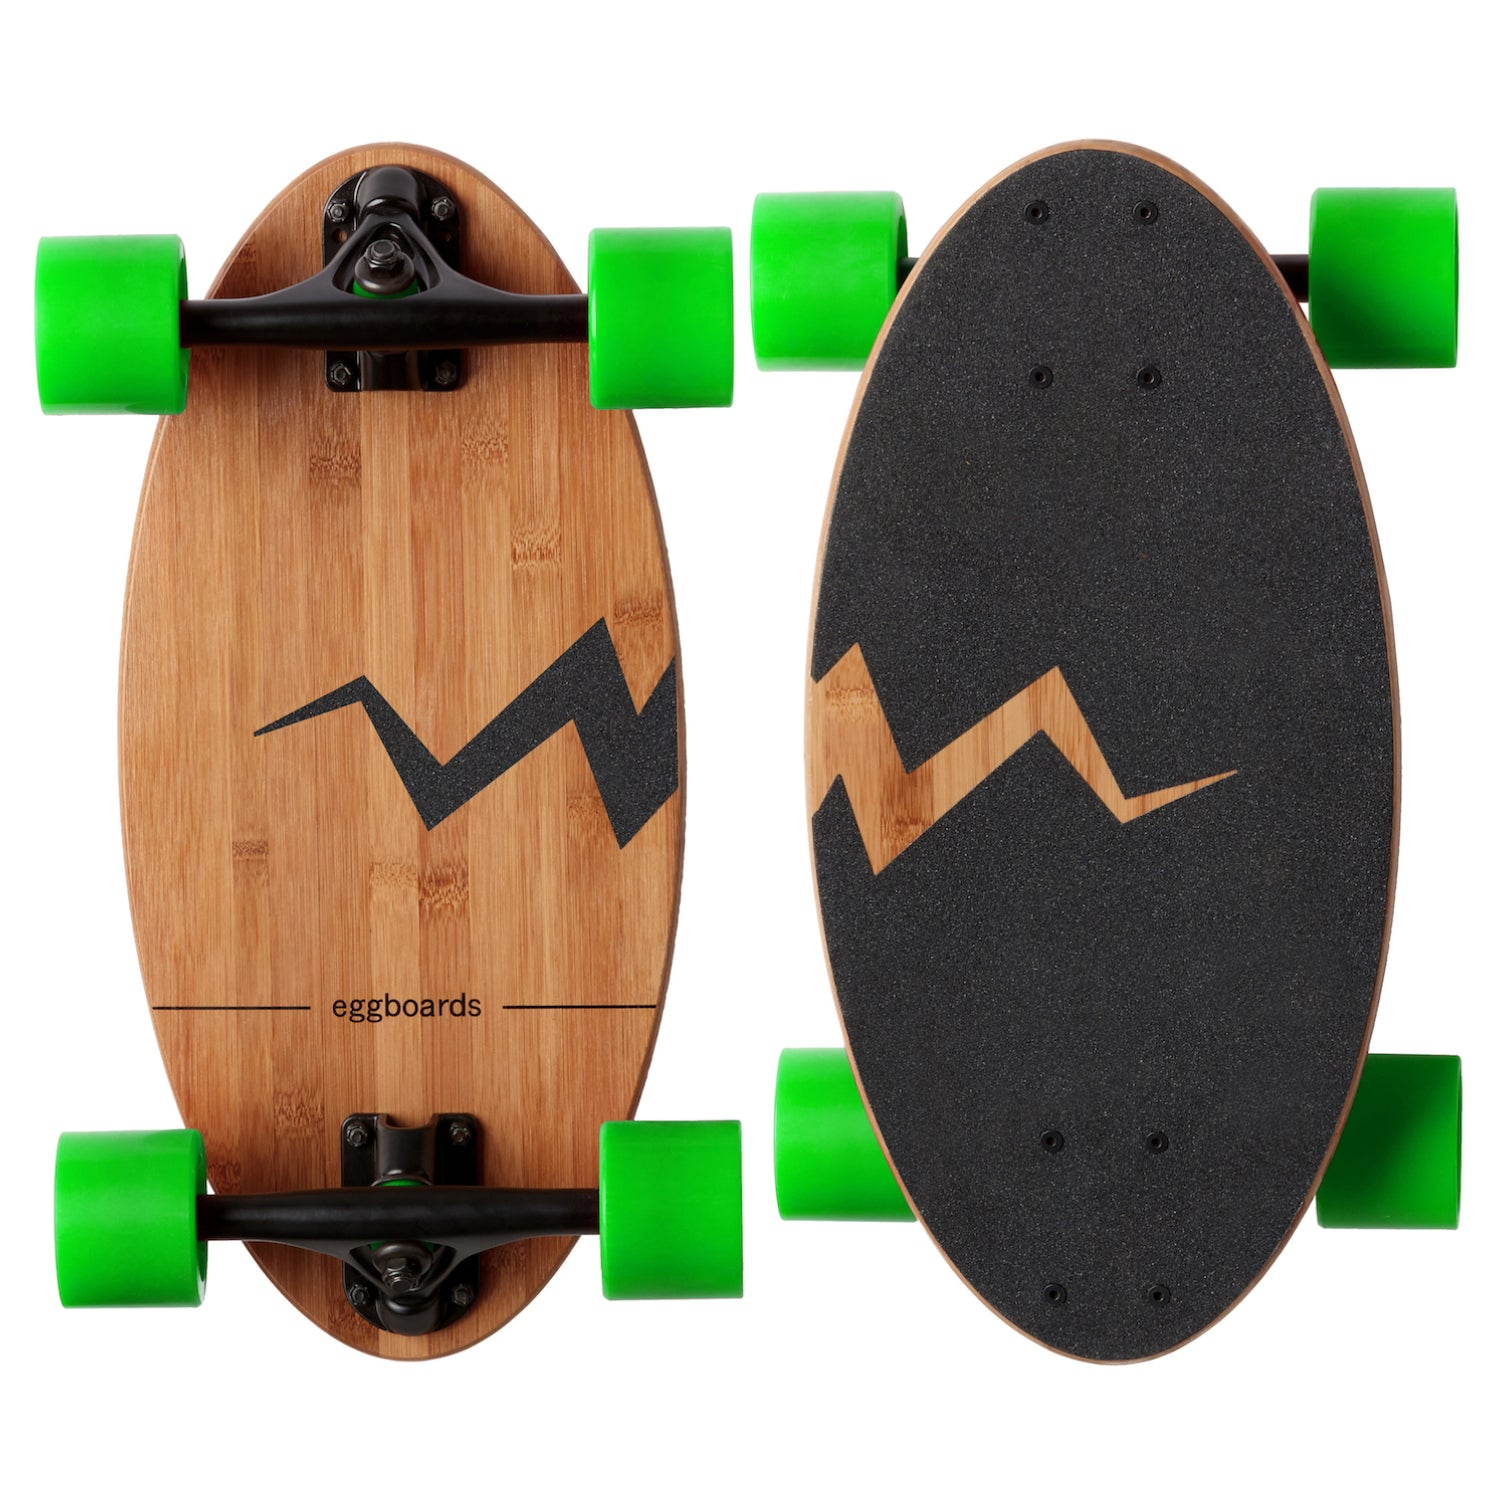 Eggboards Small Longboard Skateboard with Green Wheels and cracked egg griptape design